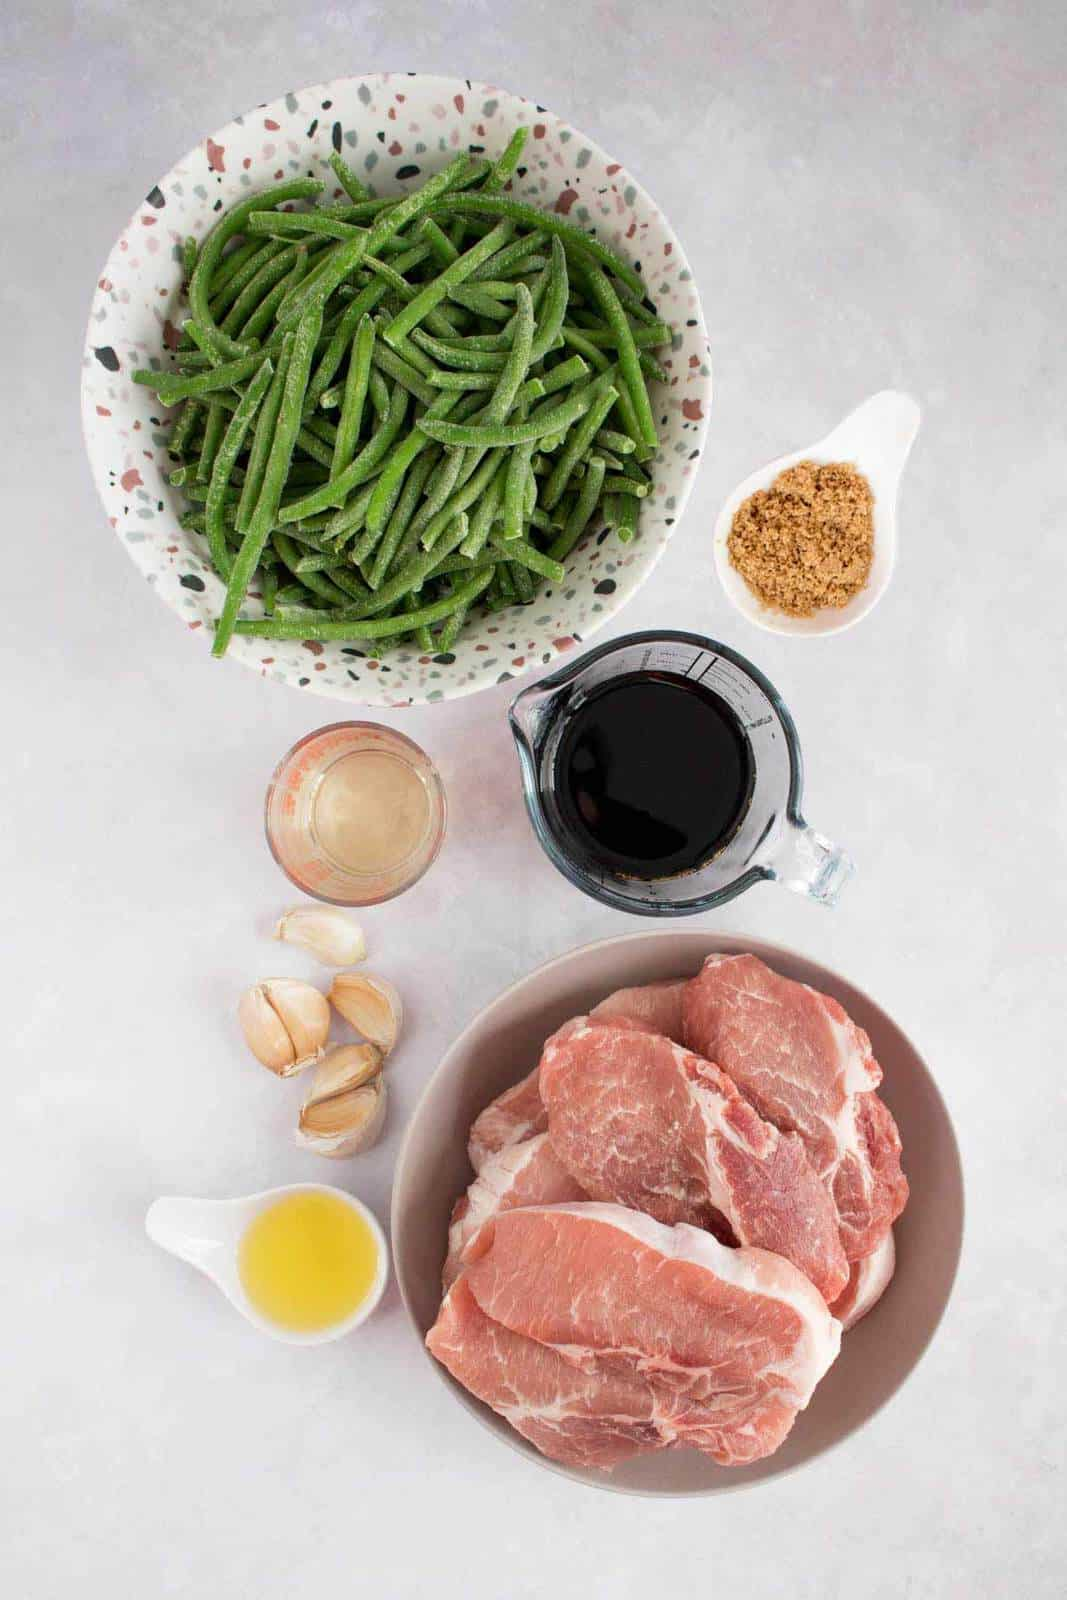 Overhead image of ingredients required to make braised pork and vegetables.